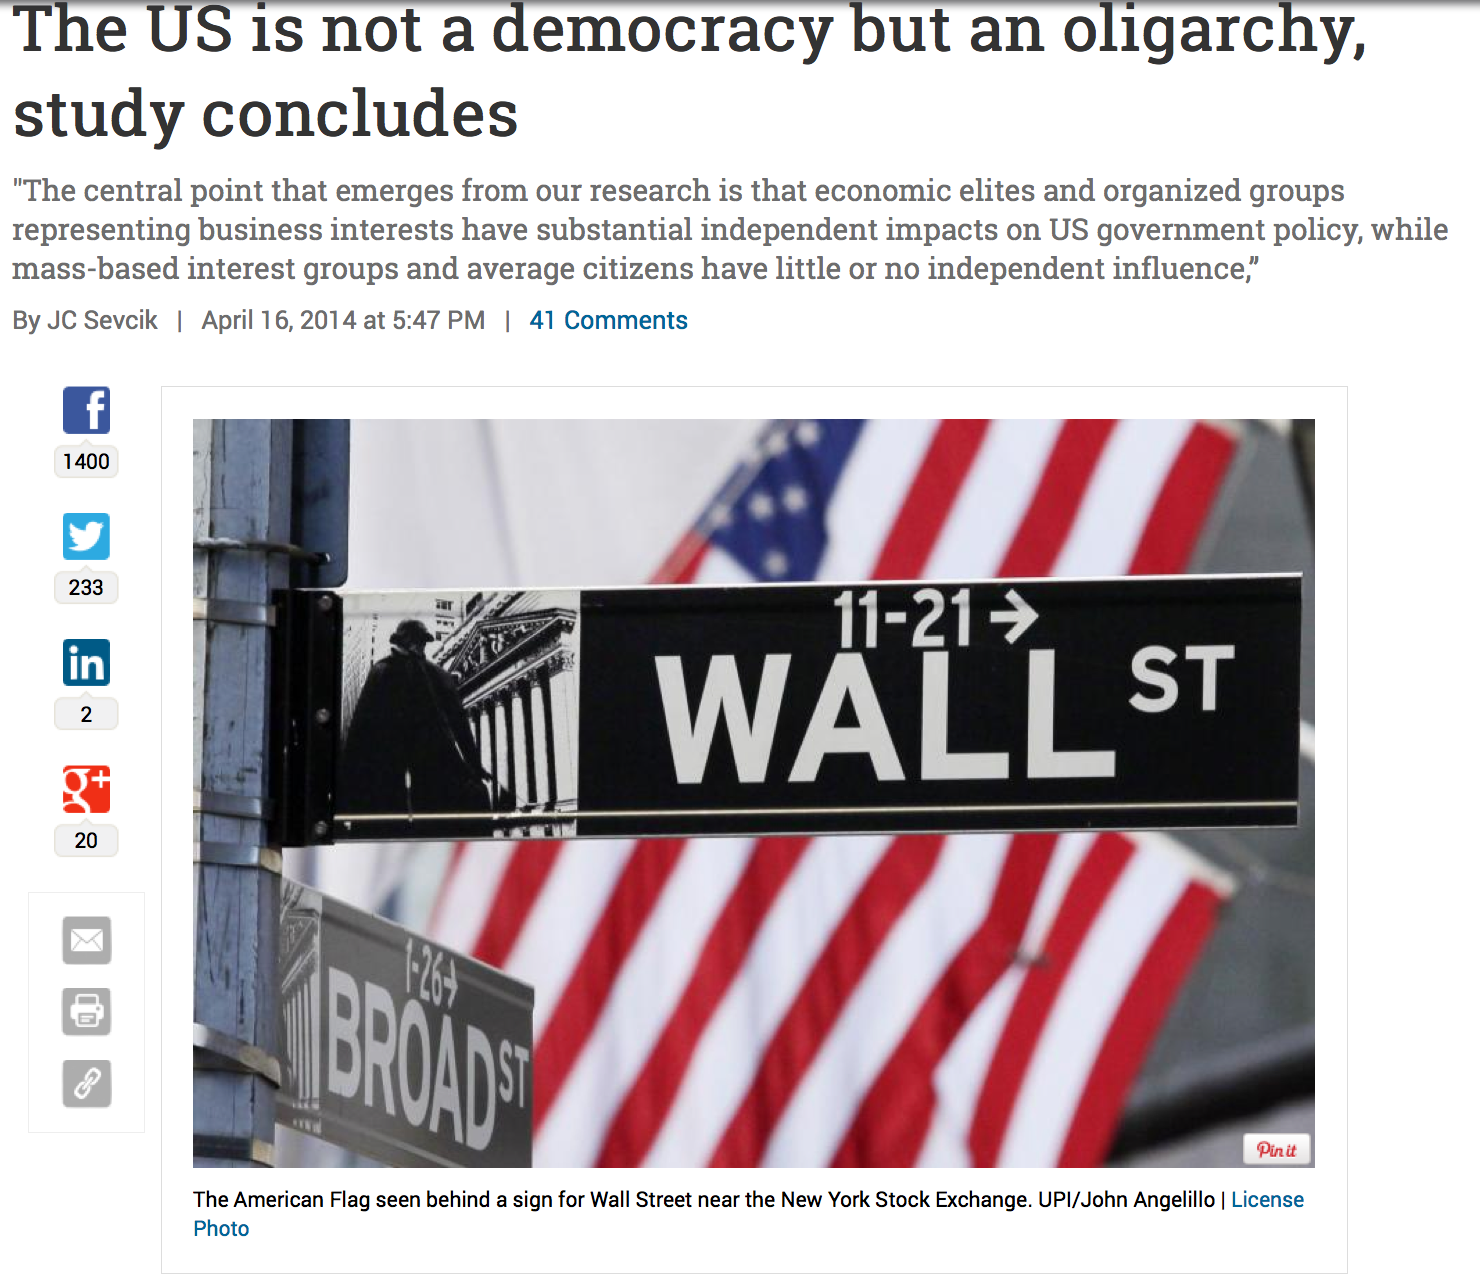 http://www.upi.com/Top_News/US/2014/04/16/The-US-is-not-a-democracy-but-an-oligarchy-study-concludes/2761397680051/